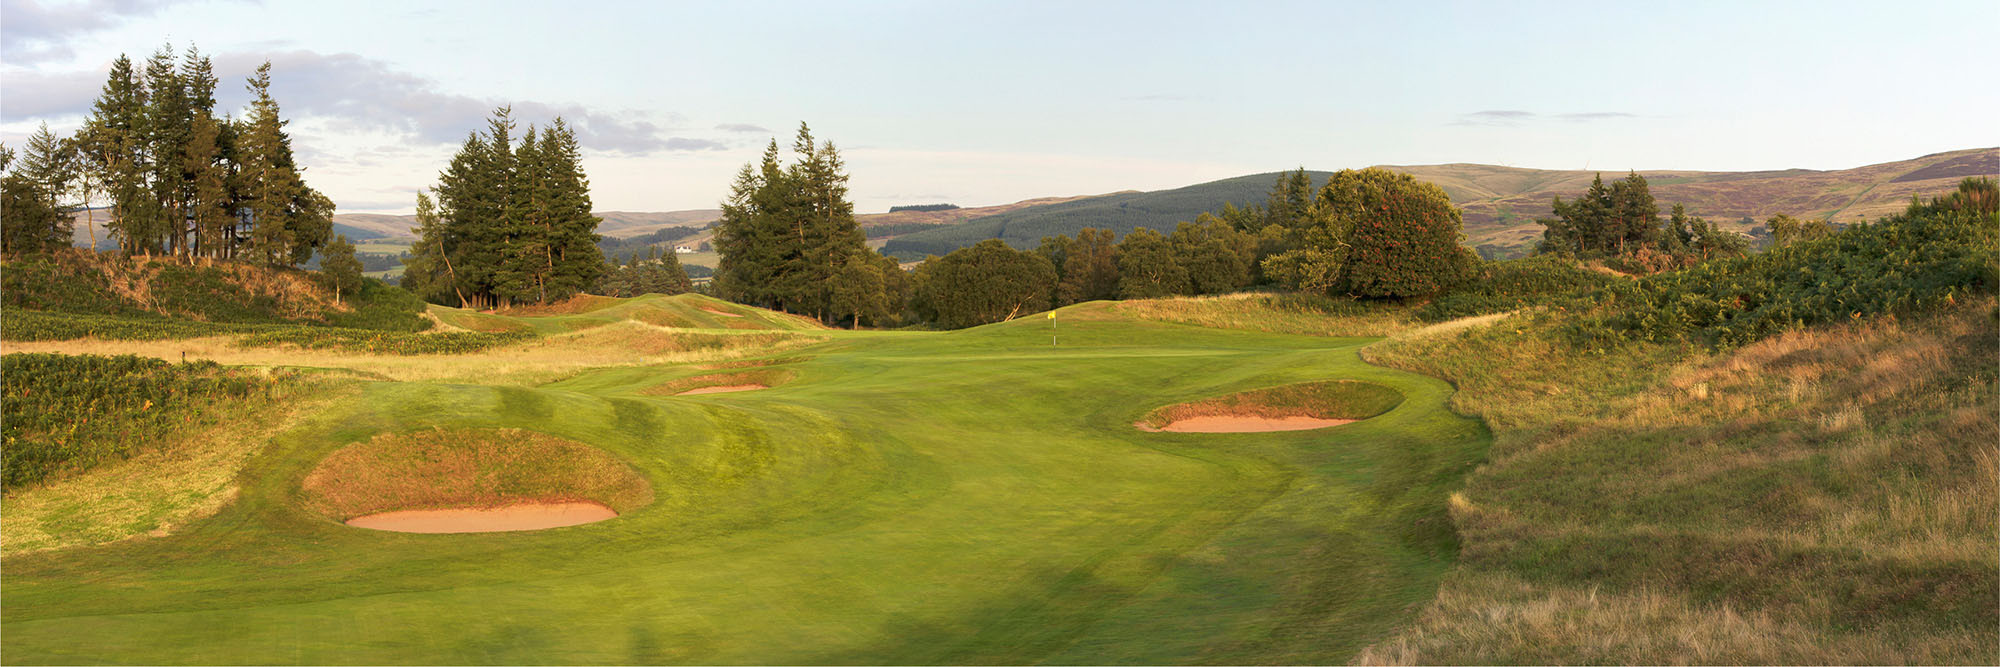 Golf Course Image - Gleneagles Kings No. 13